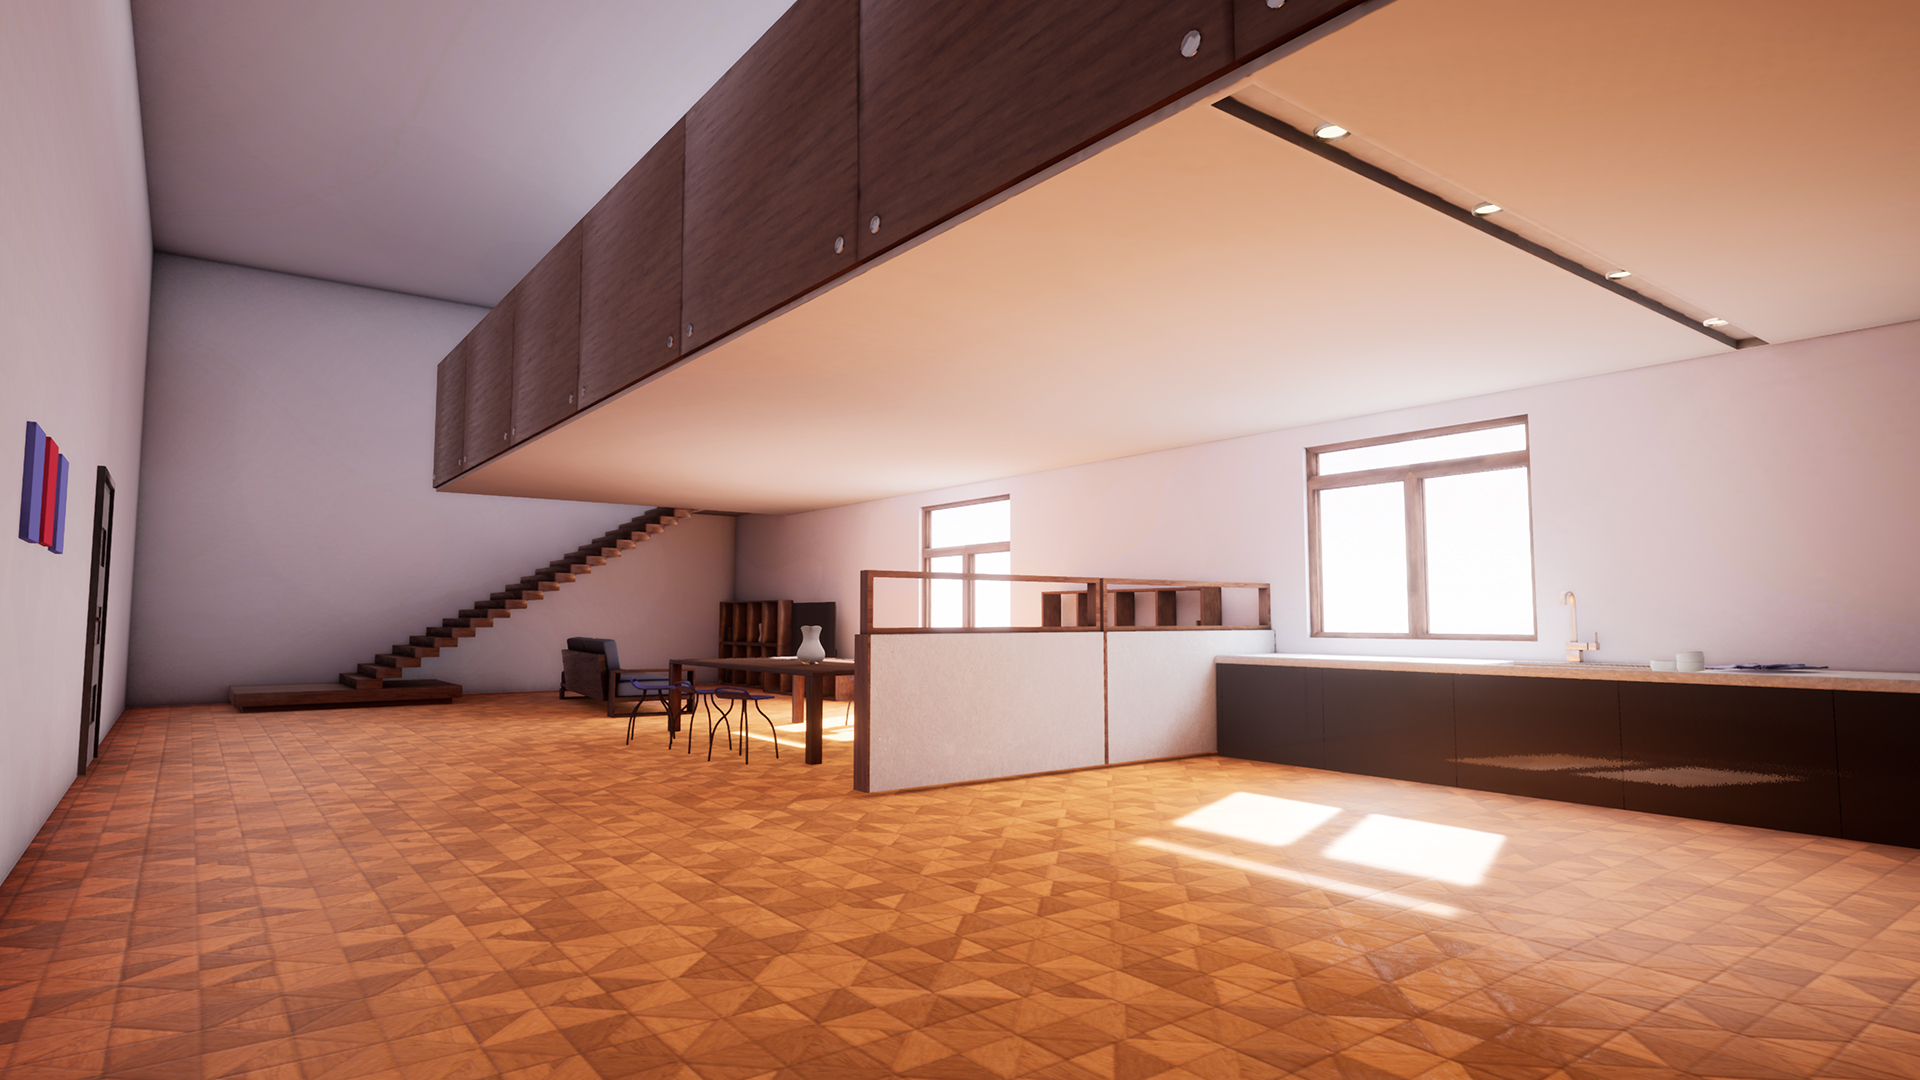 Unreal Engine: Global Illumination for Architectural